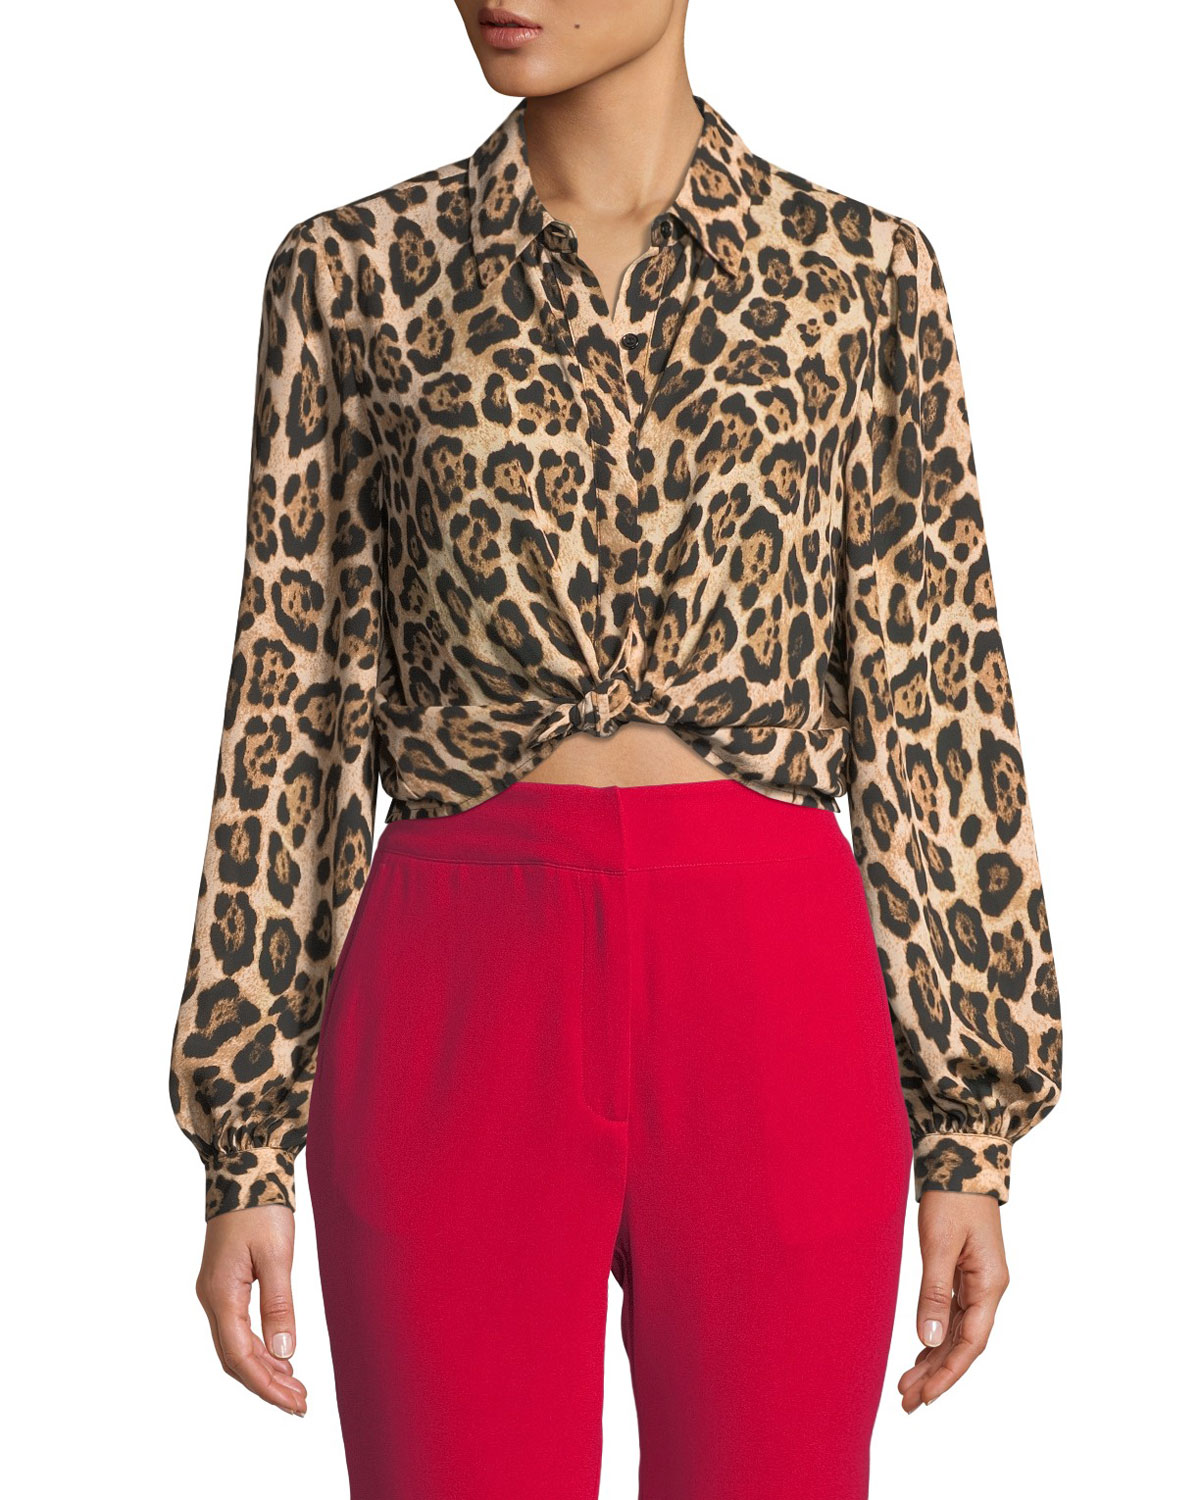 MARLED BY REUNITED Button-Down Leopard-Print Cropped Blouse